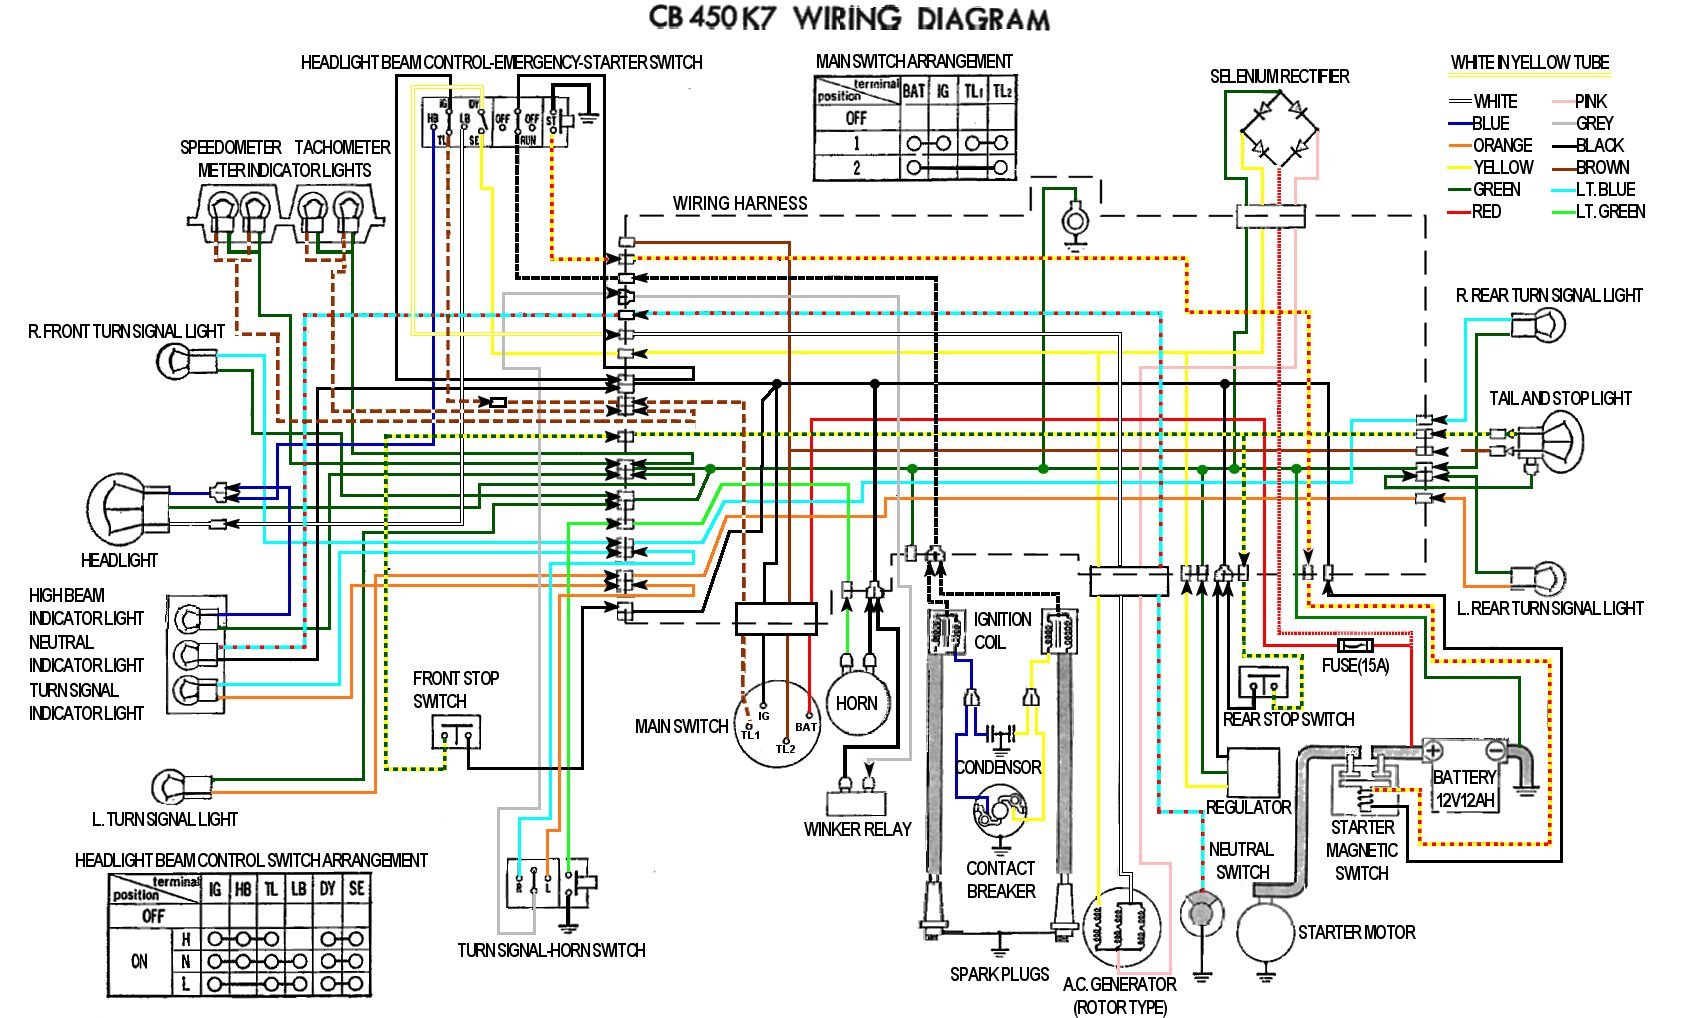 Drawing Wiring Schematics Free Diagram For You Draw Circuit Diagrams Cb450 Color Now Corrected Schematic Online